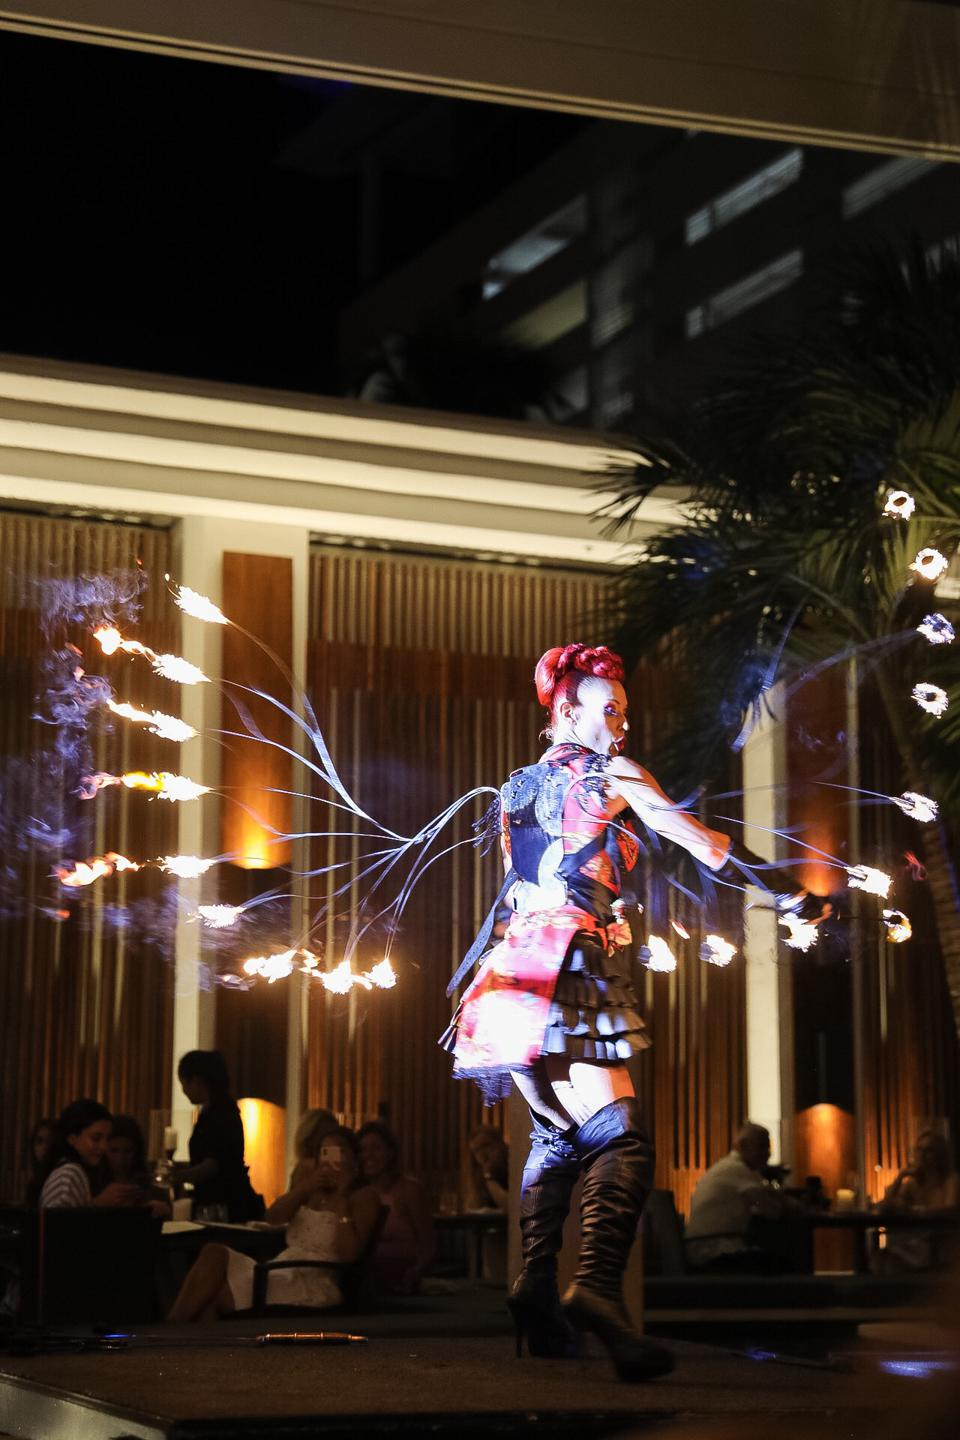 A fire dancer at the Setai Miami Beach Asian Night Bazaar